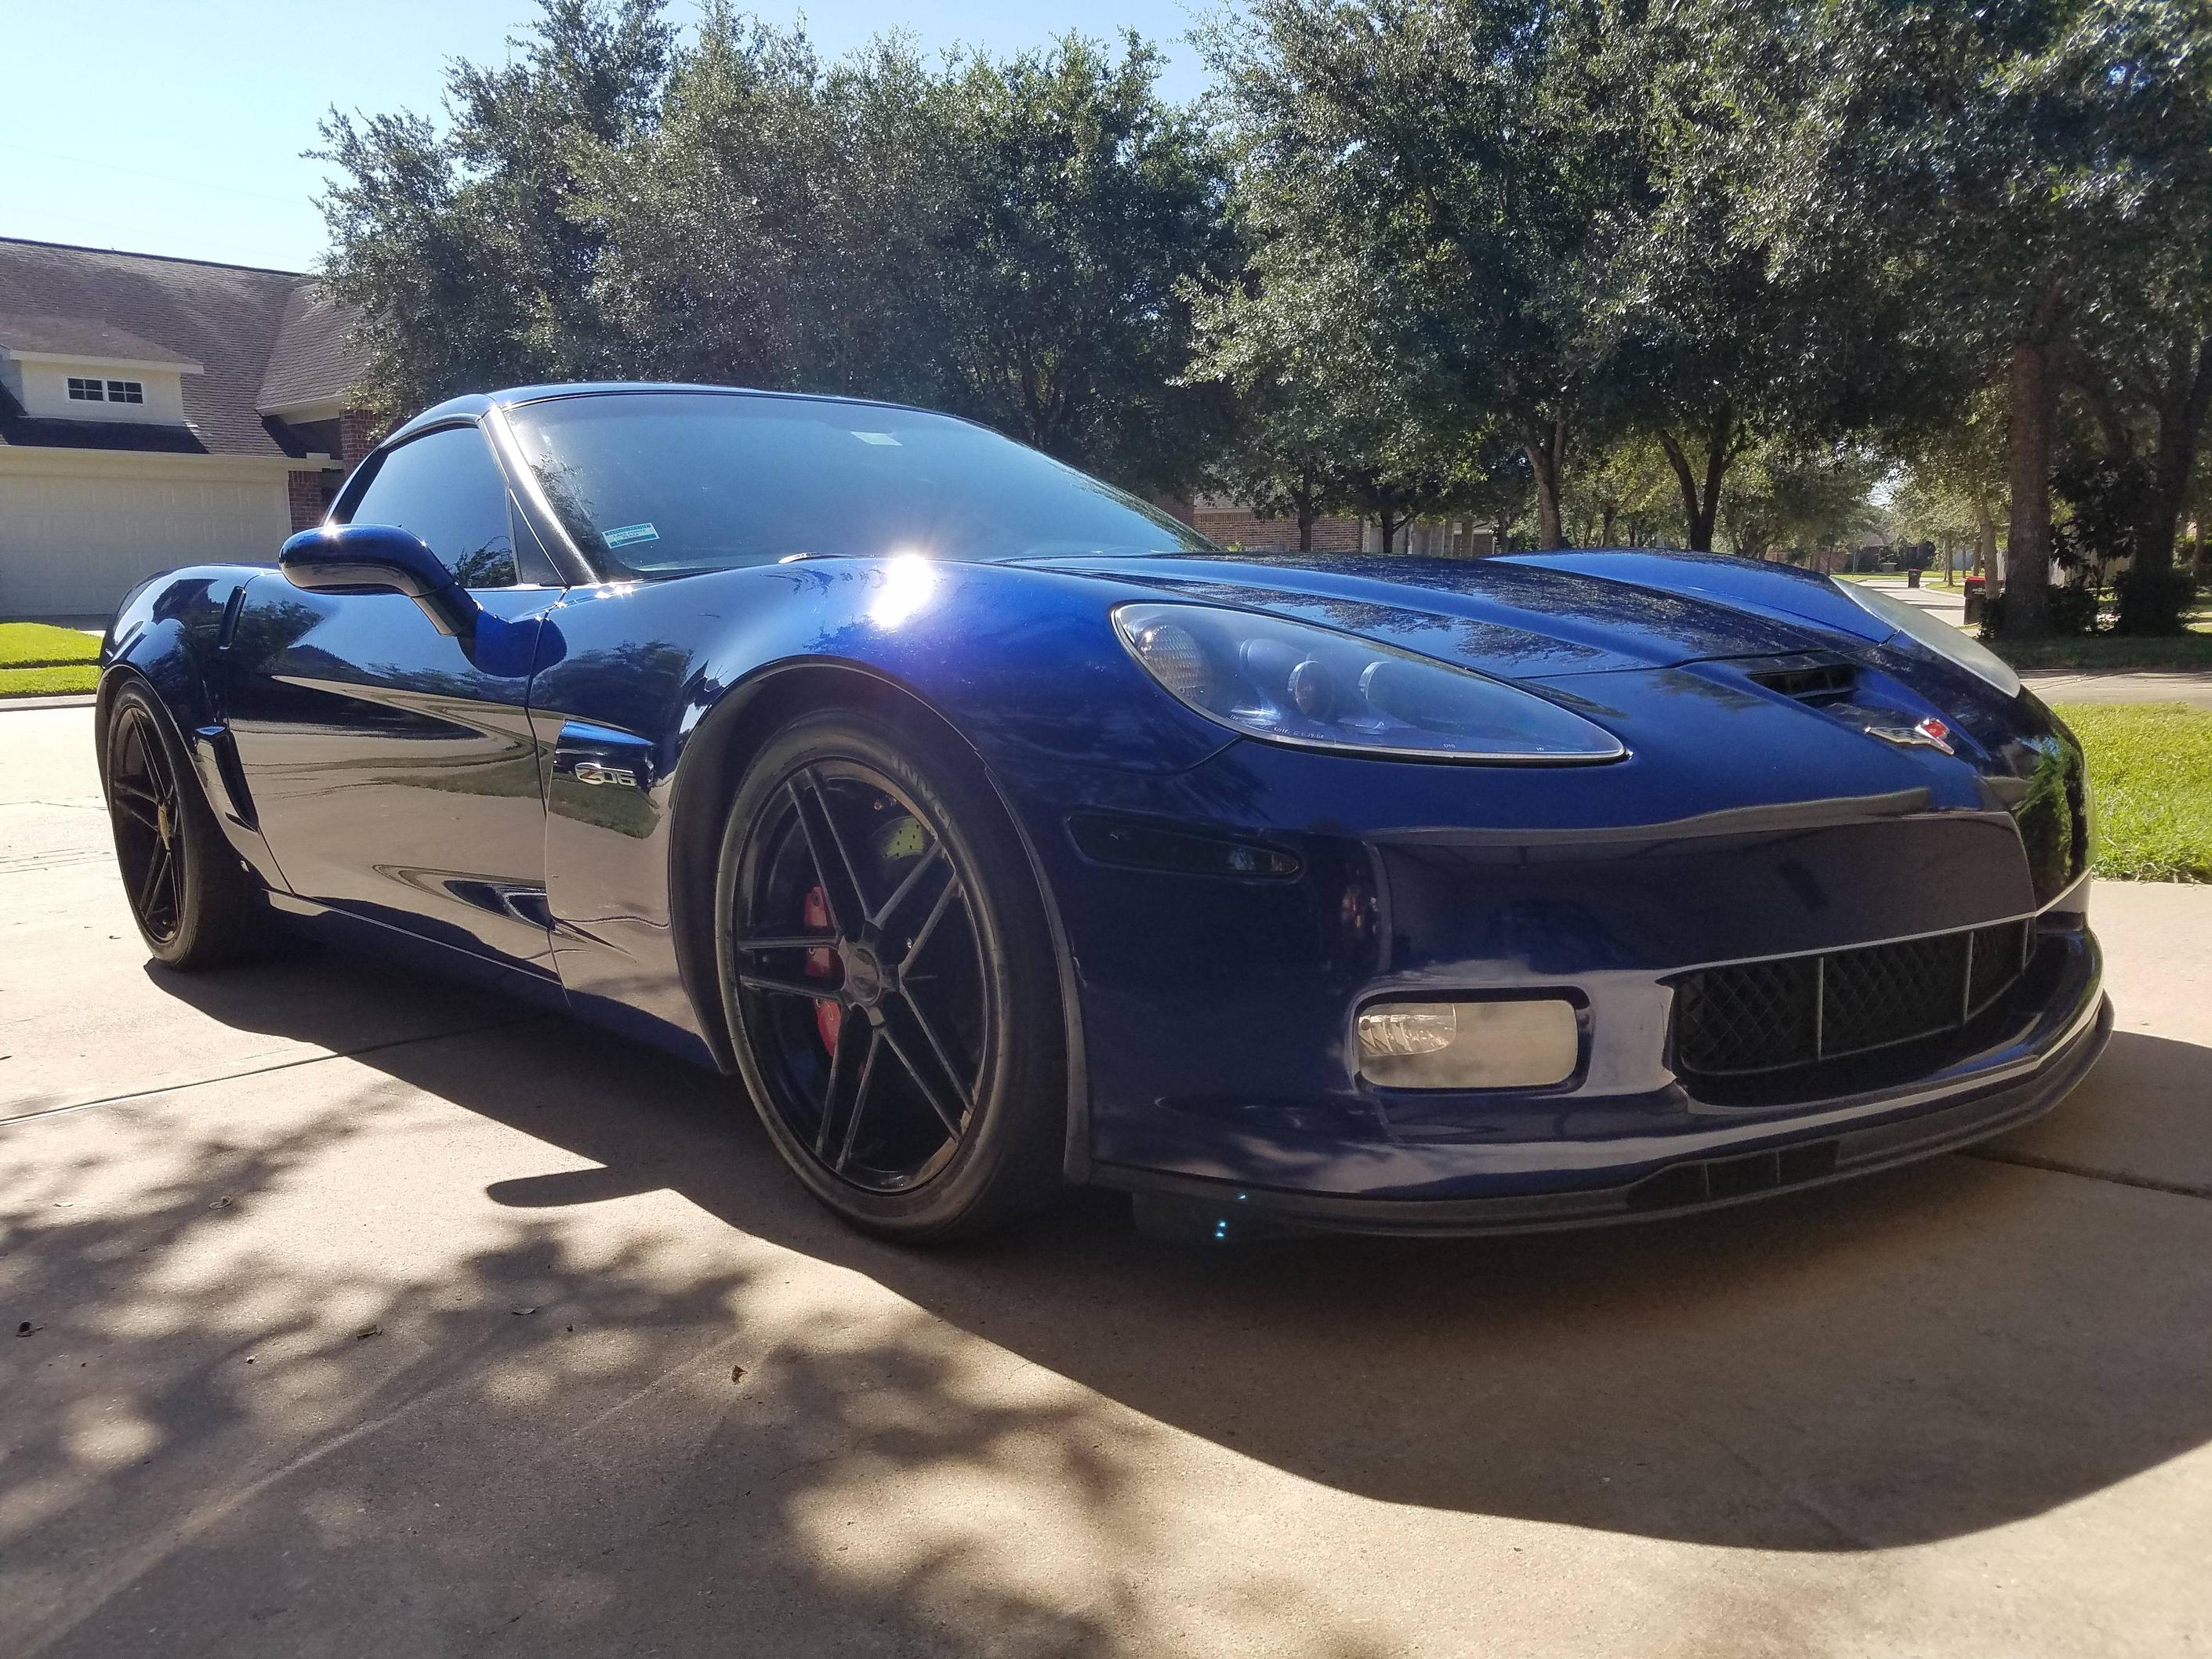 Sold 2006 corvette z06 2lz lemans blue with 62 000 miles for sale